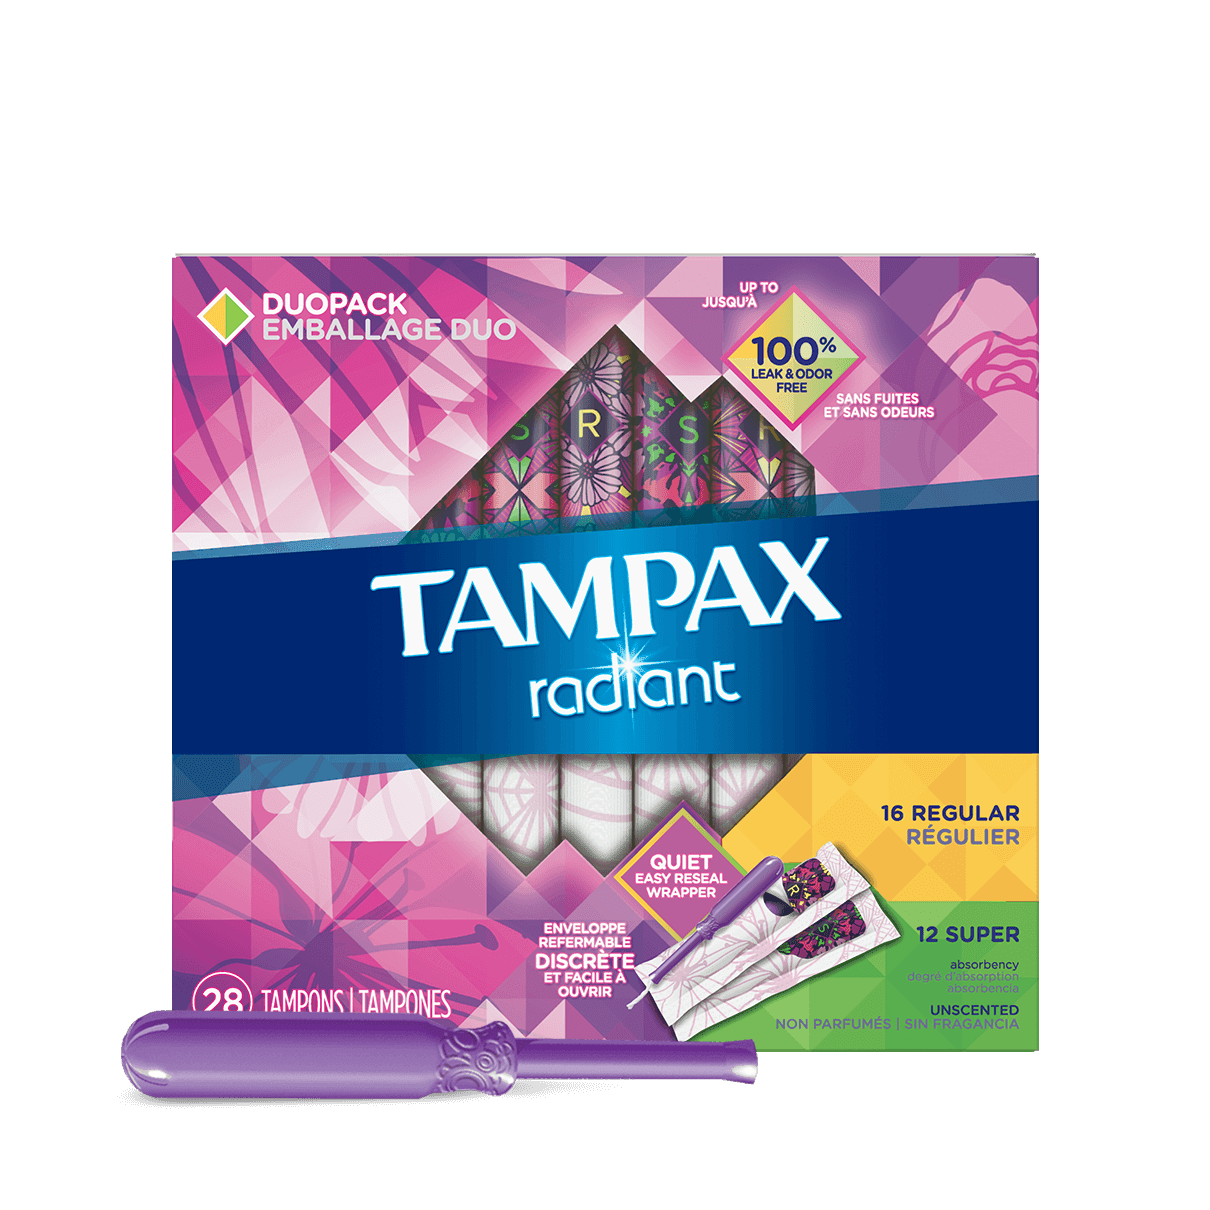 Tampax Radiant Duopack